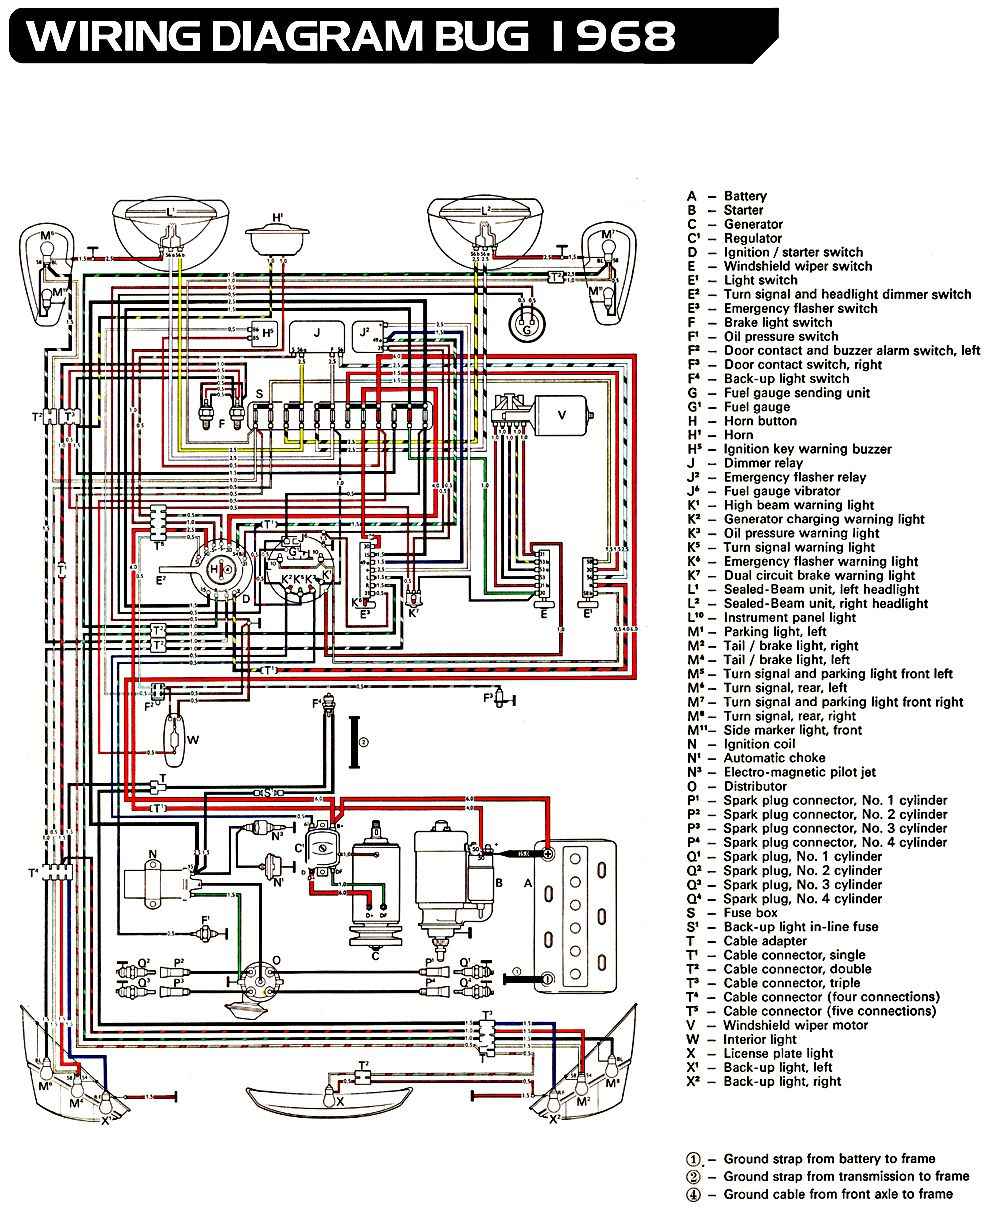 3a1908112d3826270ed5e3be362292bf vw bug ignition wiring diagram 73 vw wiring diagram free 1973 vw super beetle wiring harness at creativeand.co